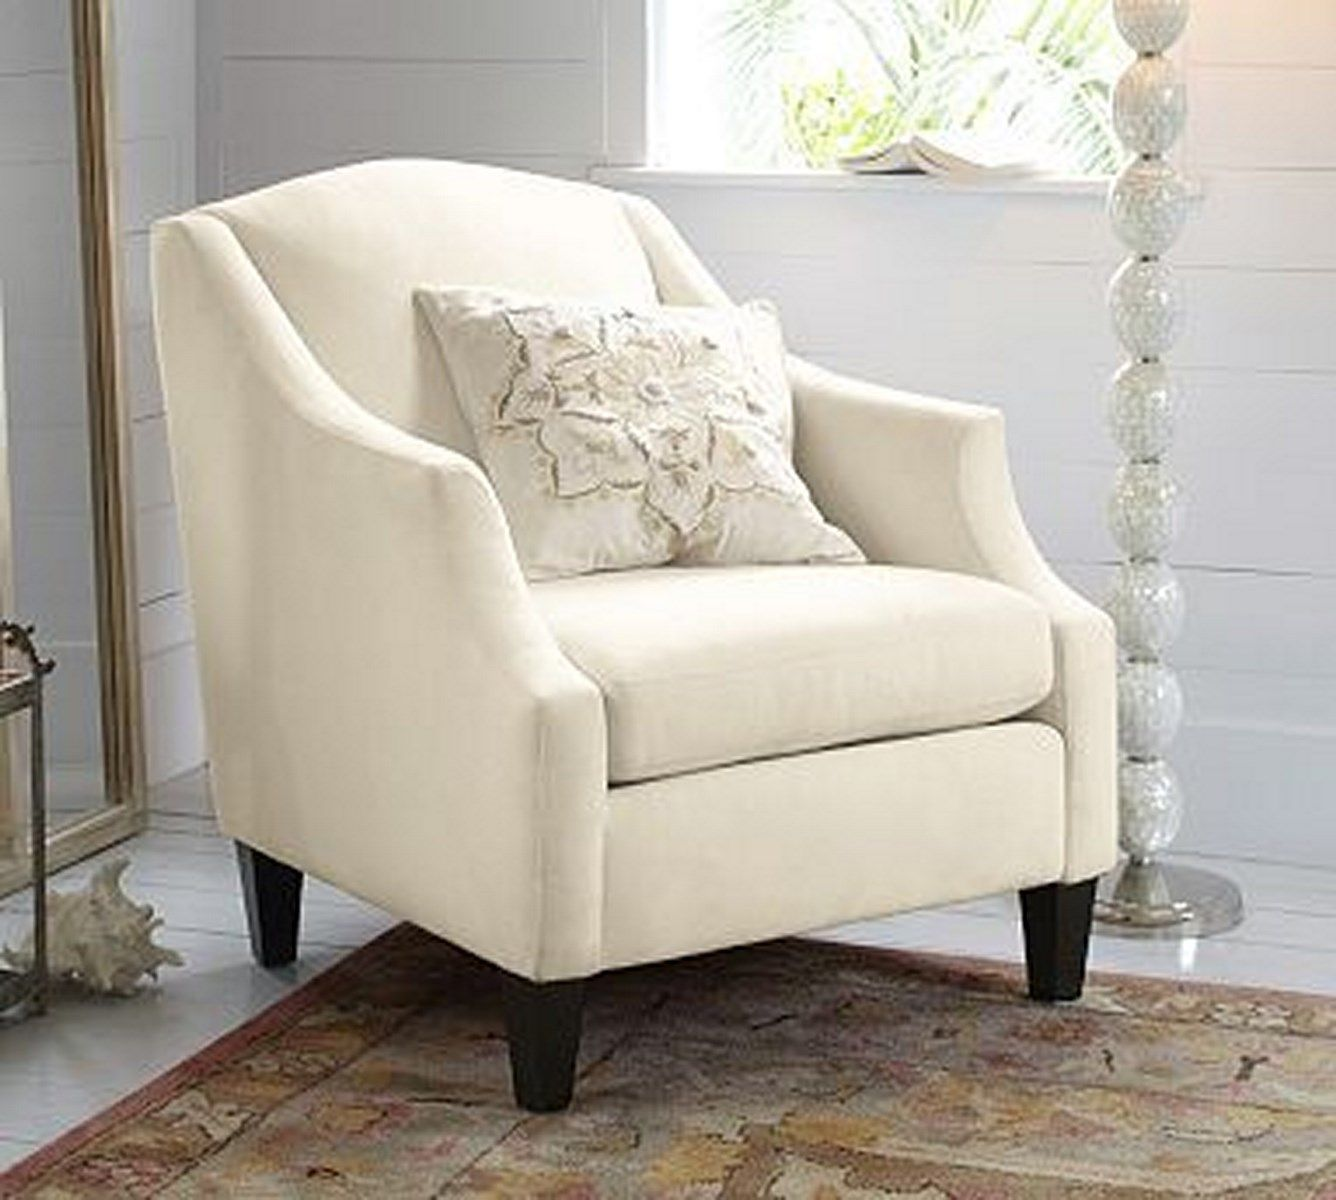 Bradshaw White Bedroom Armchair | Furniture | Furniture, Bedroom ...